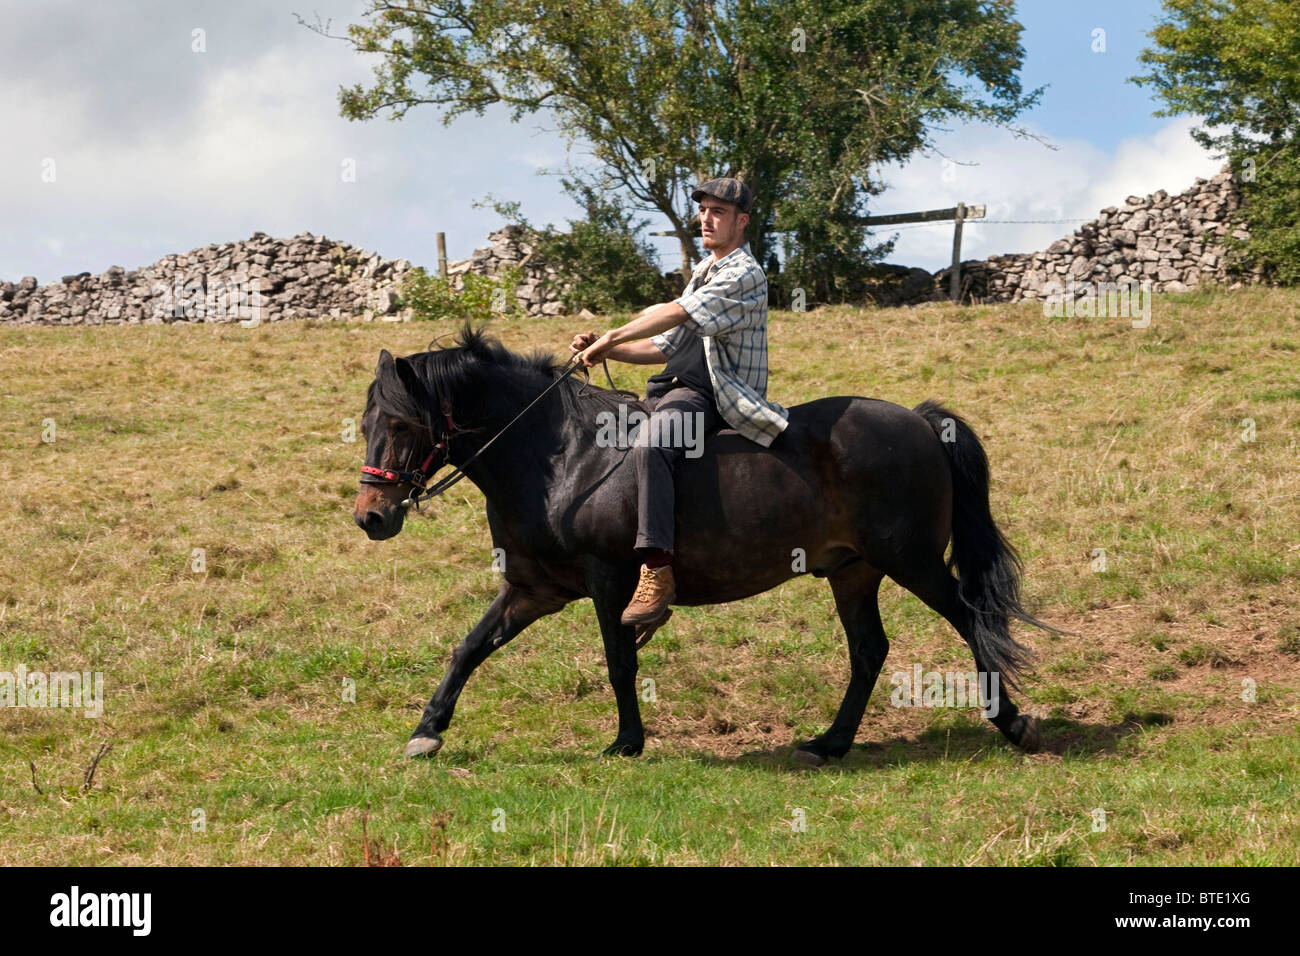 A young gypsy man proudly rides bare back on his brown cob horse at the gypsy gathering of Priddy Sheep Fair. DAVID - Stock Image